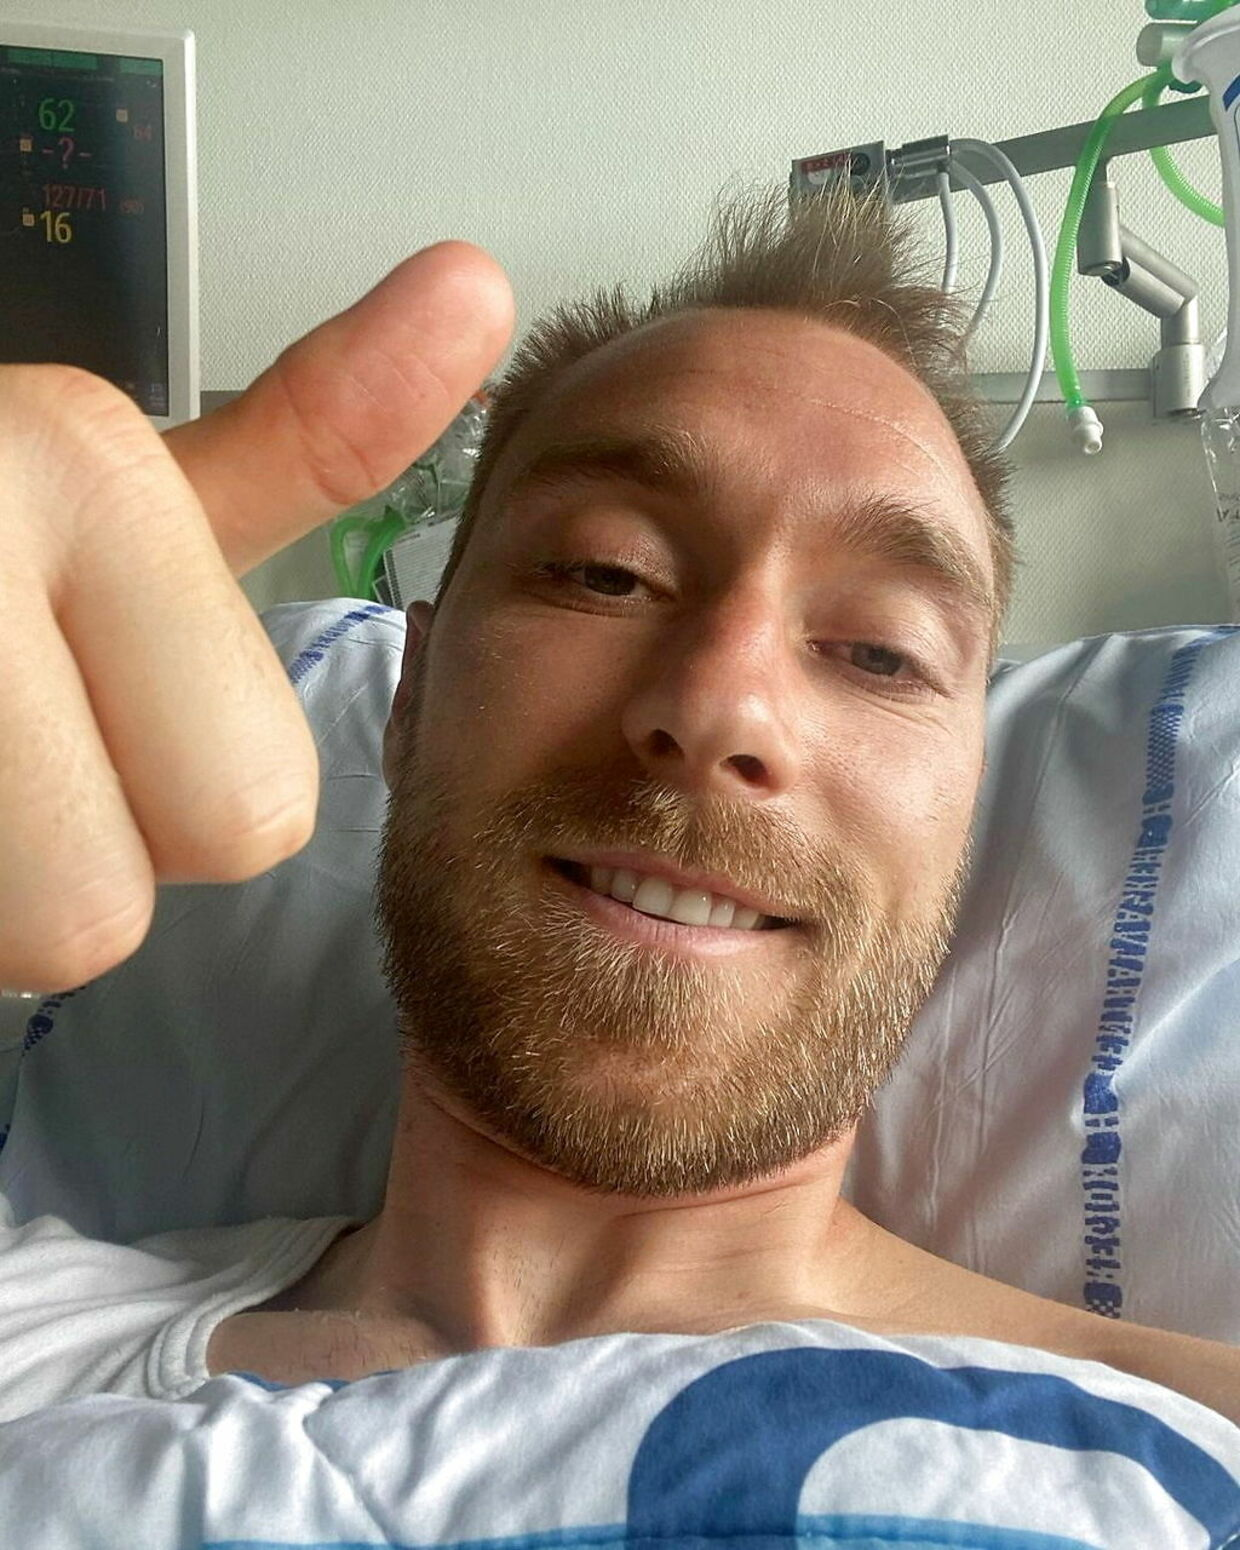 FILE PHOTO: Danish footballer Christian Eriksen gives a thumbs-up at Rigshospitalet, where he is treated after he collapsed during a UEFA Euro 2020 game on Saturday, in Copenhagen, Denmark, in this picture obtained from social media. Picture published June 15, 2021. Danish Football Association/via REUTERS THIS IMAGE HAS BEEN SUPPLIED BY A THIRD PARTY. MANDATORY CREDIT.NO RESALES.NO ARCHIVES./File Photo